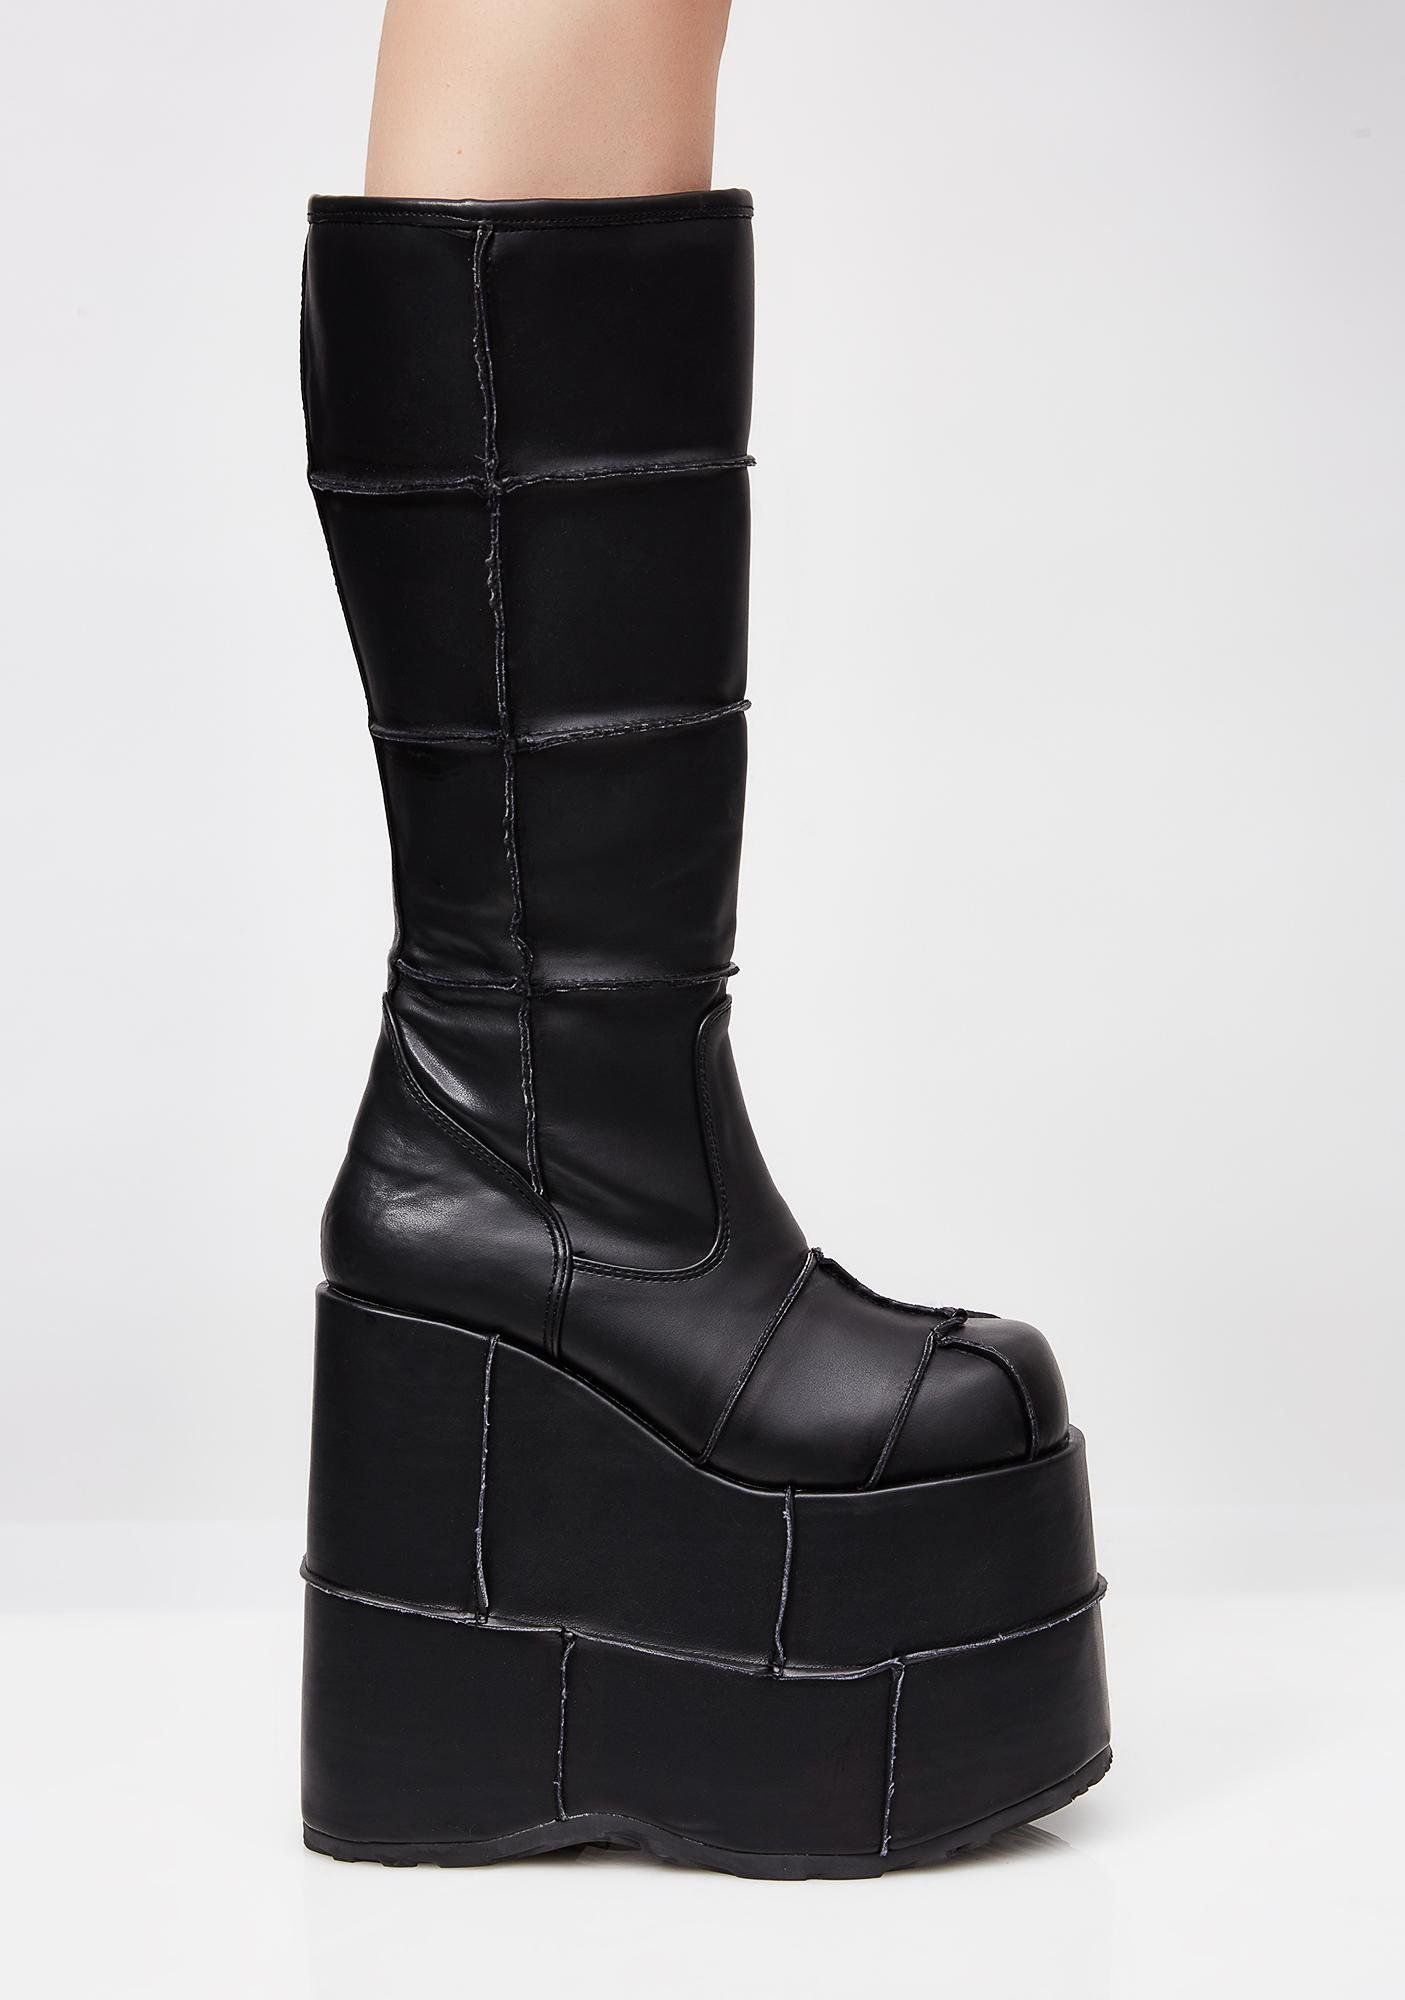 Matte PU Stacked Patched Platforms | Boots, Gothic shoes